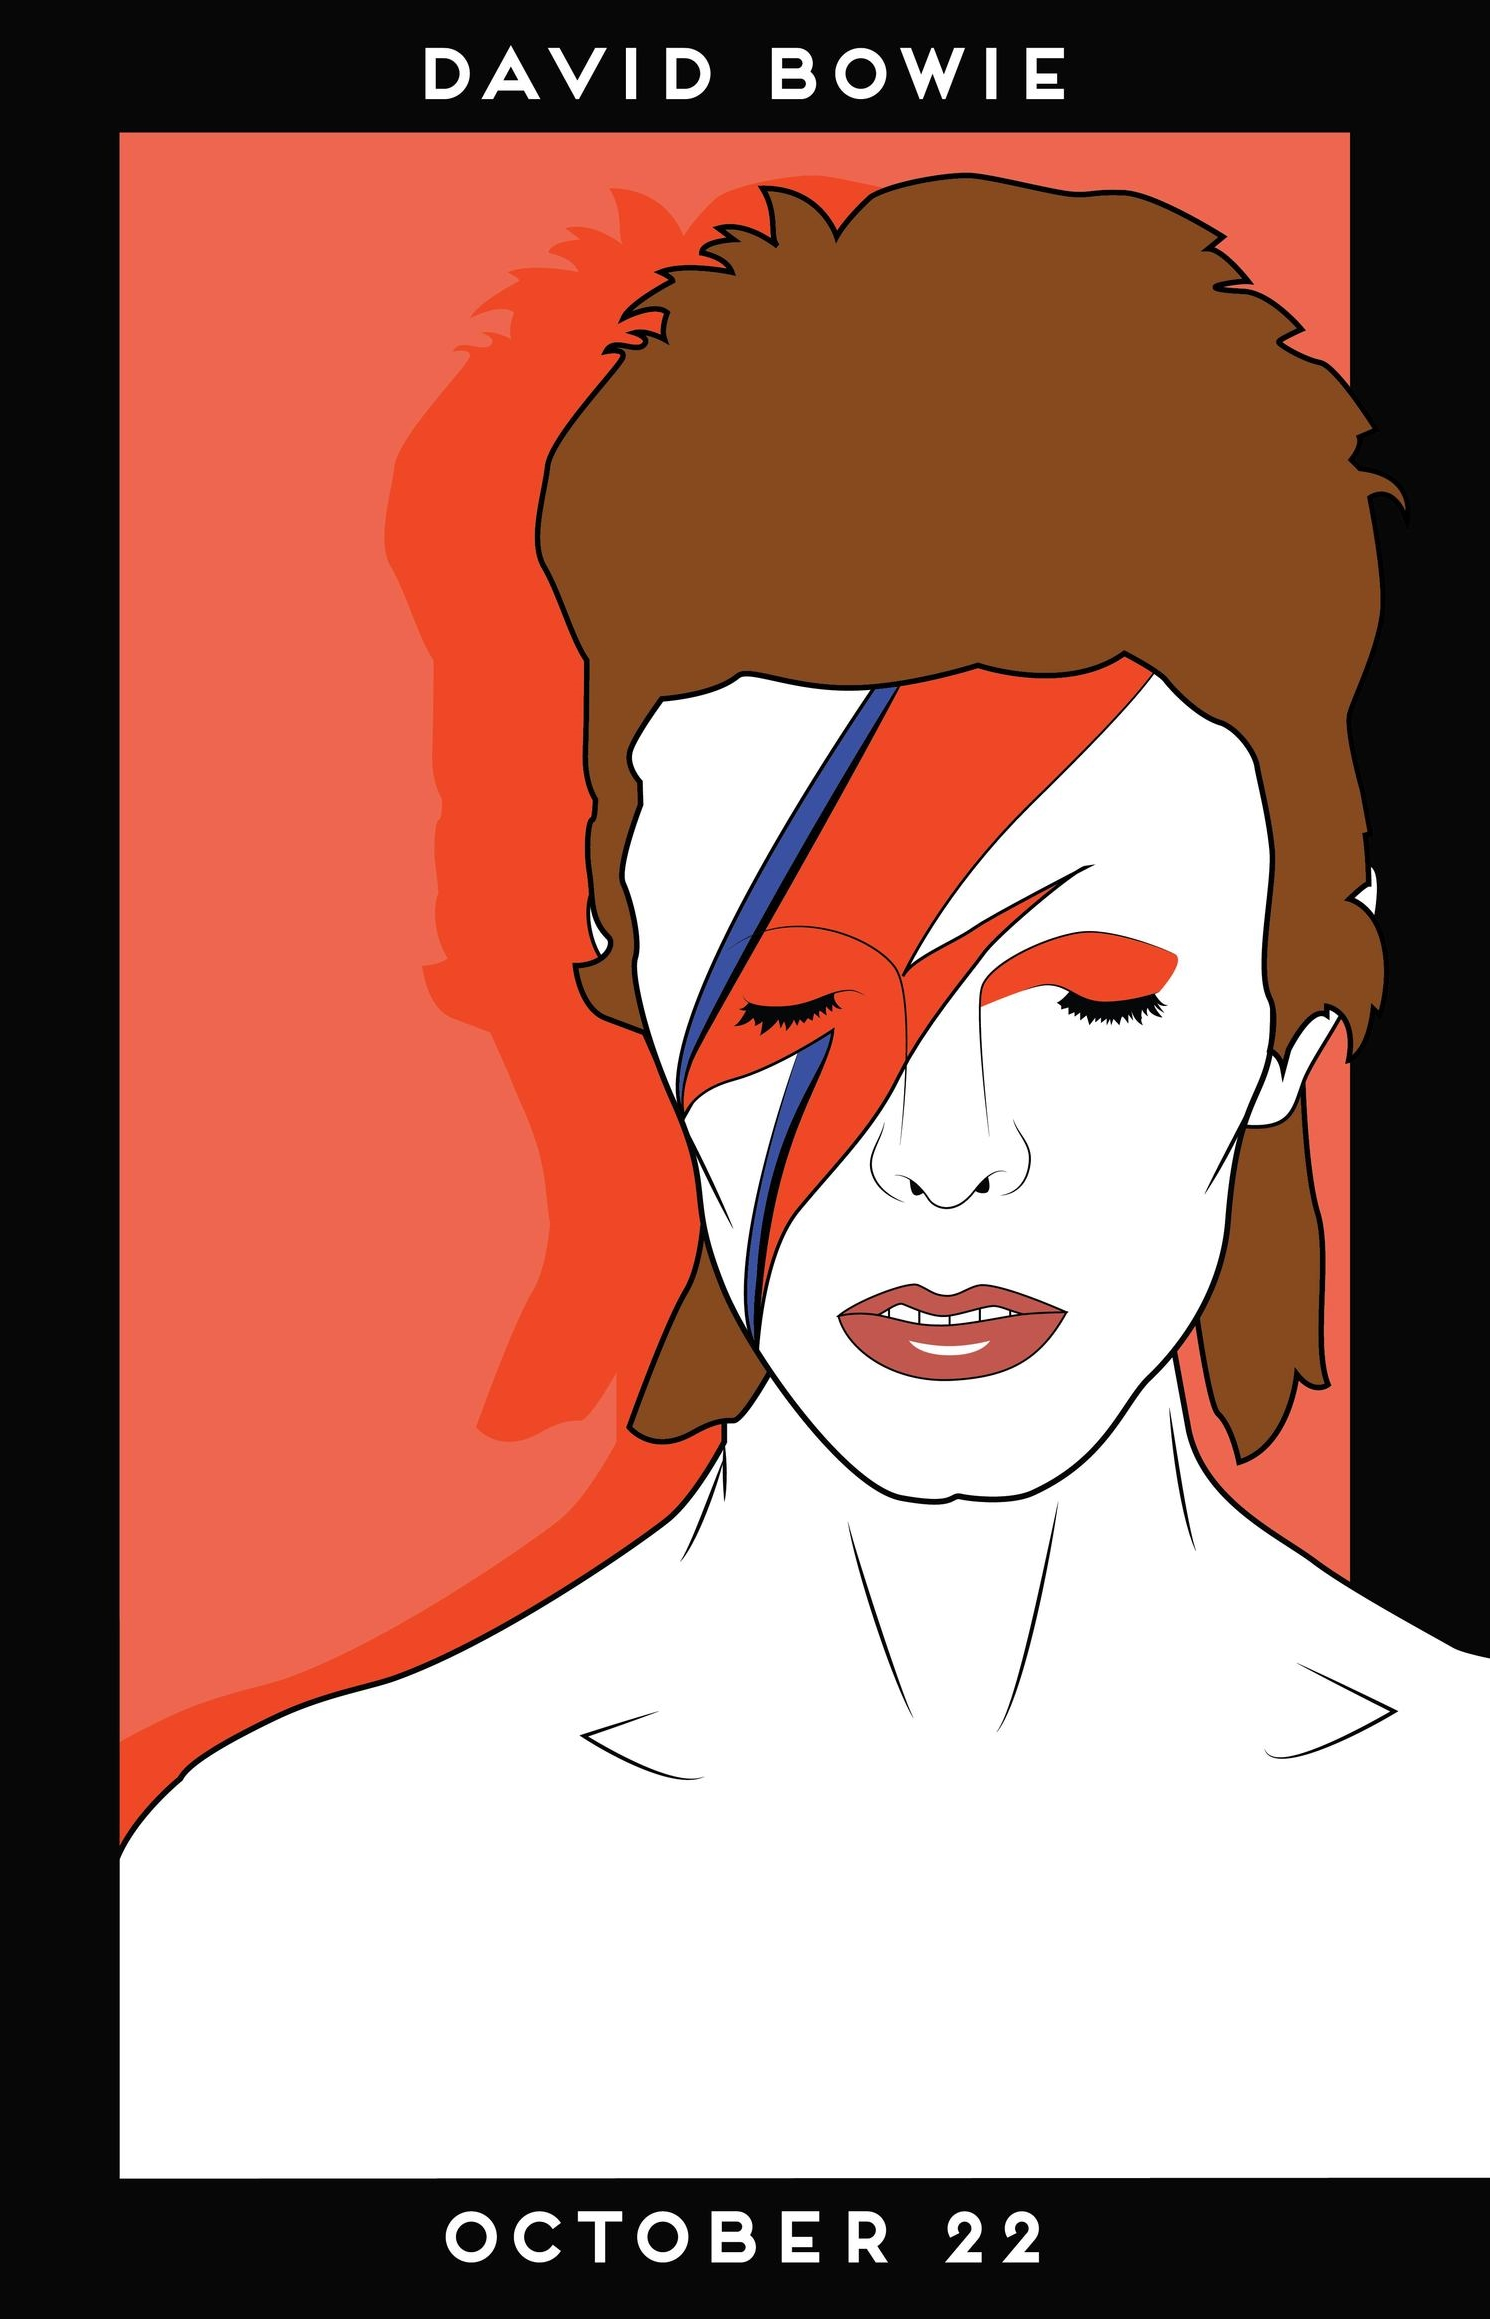 80s Pop Design inspired poster. Vector illustration of David Bowie.